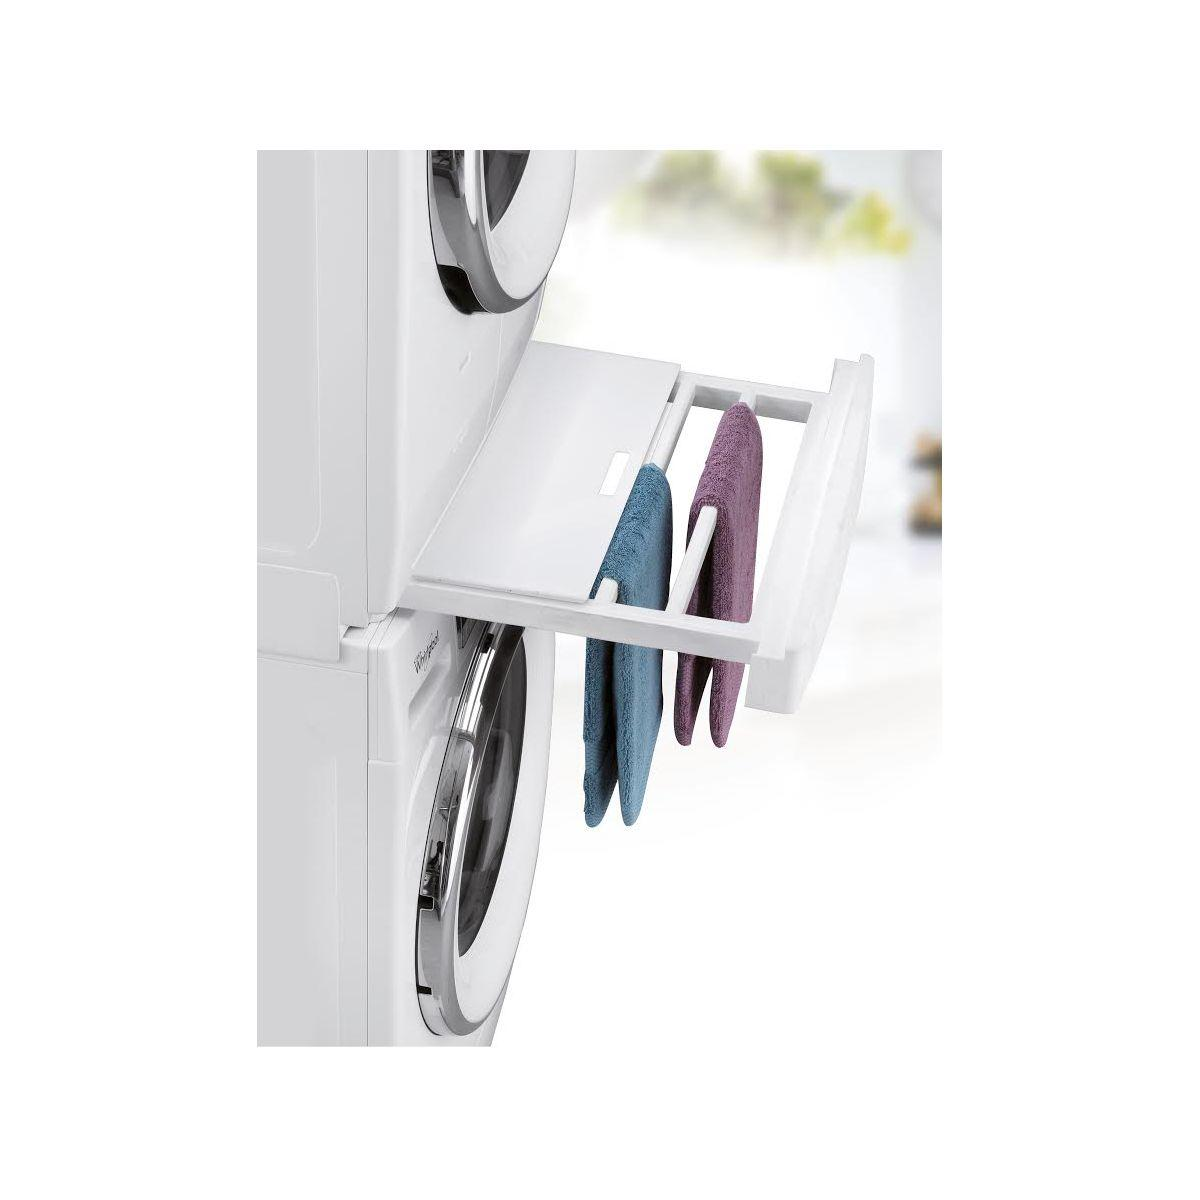 Kit de superposition wpro skp101 universel lave-linge/s�che-linge (photo)